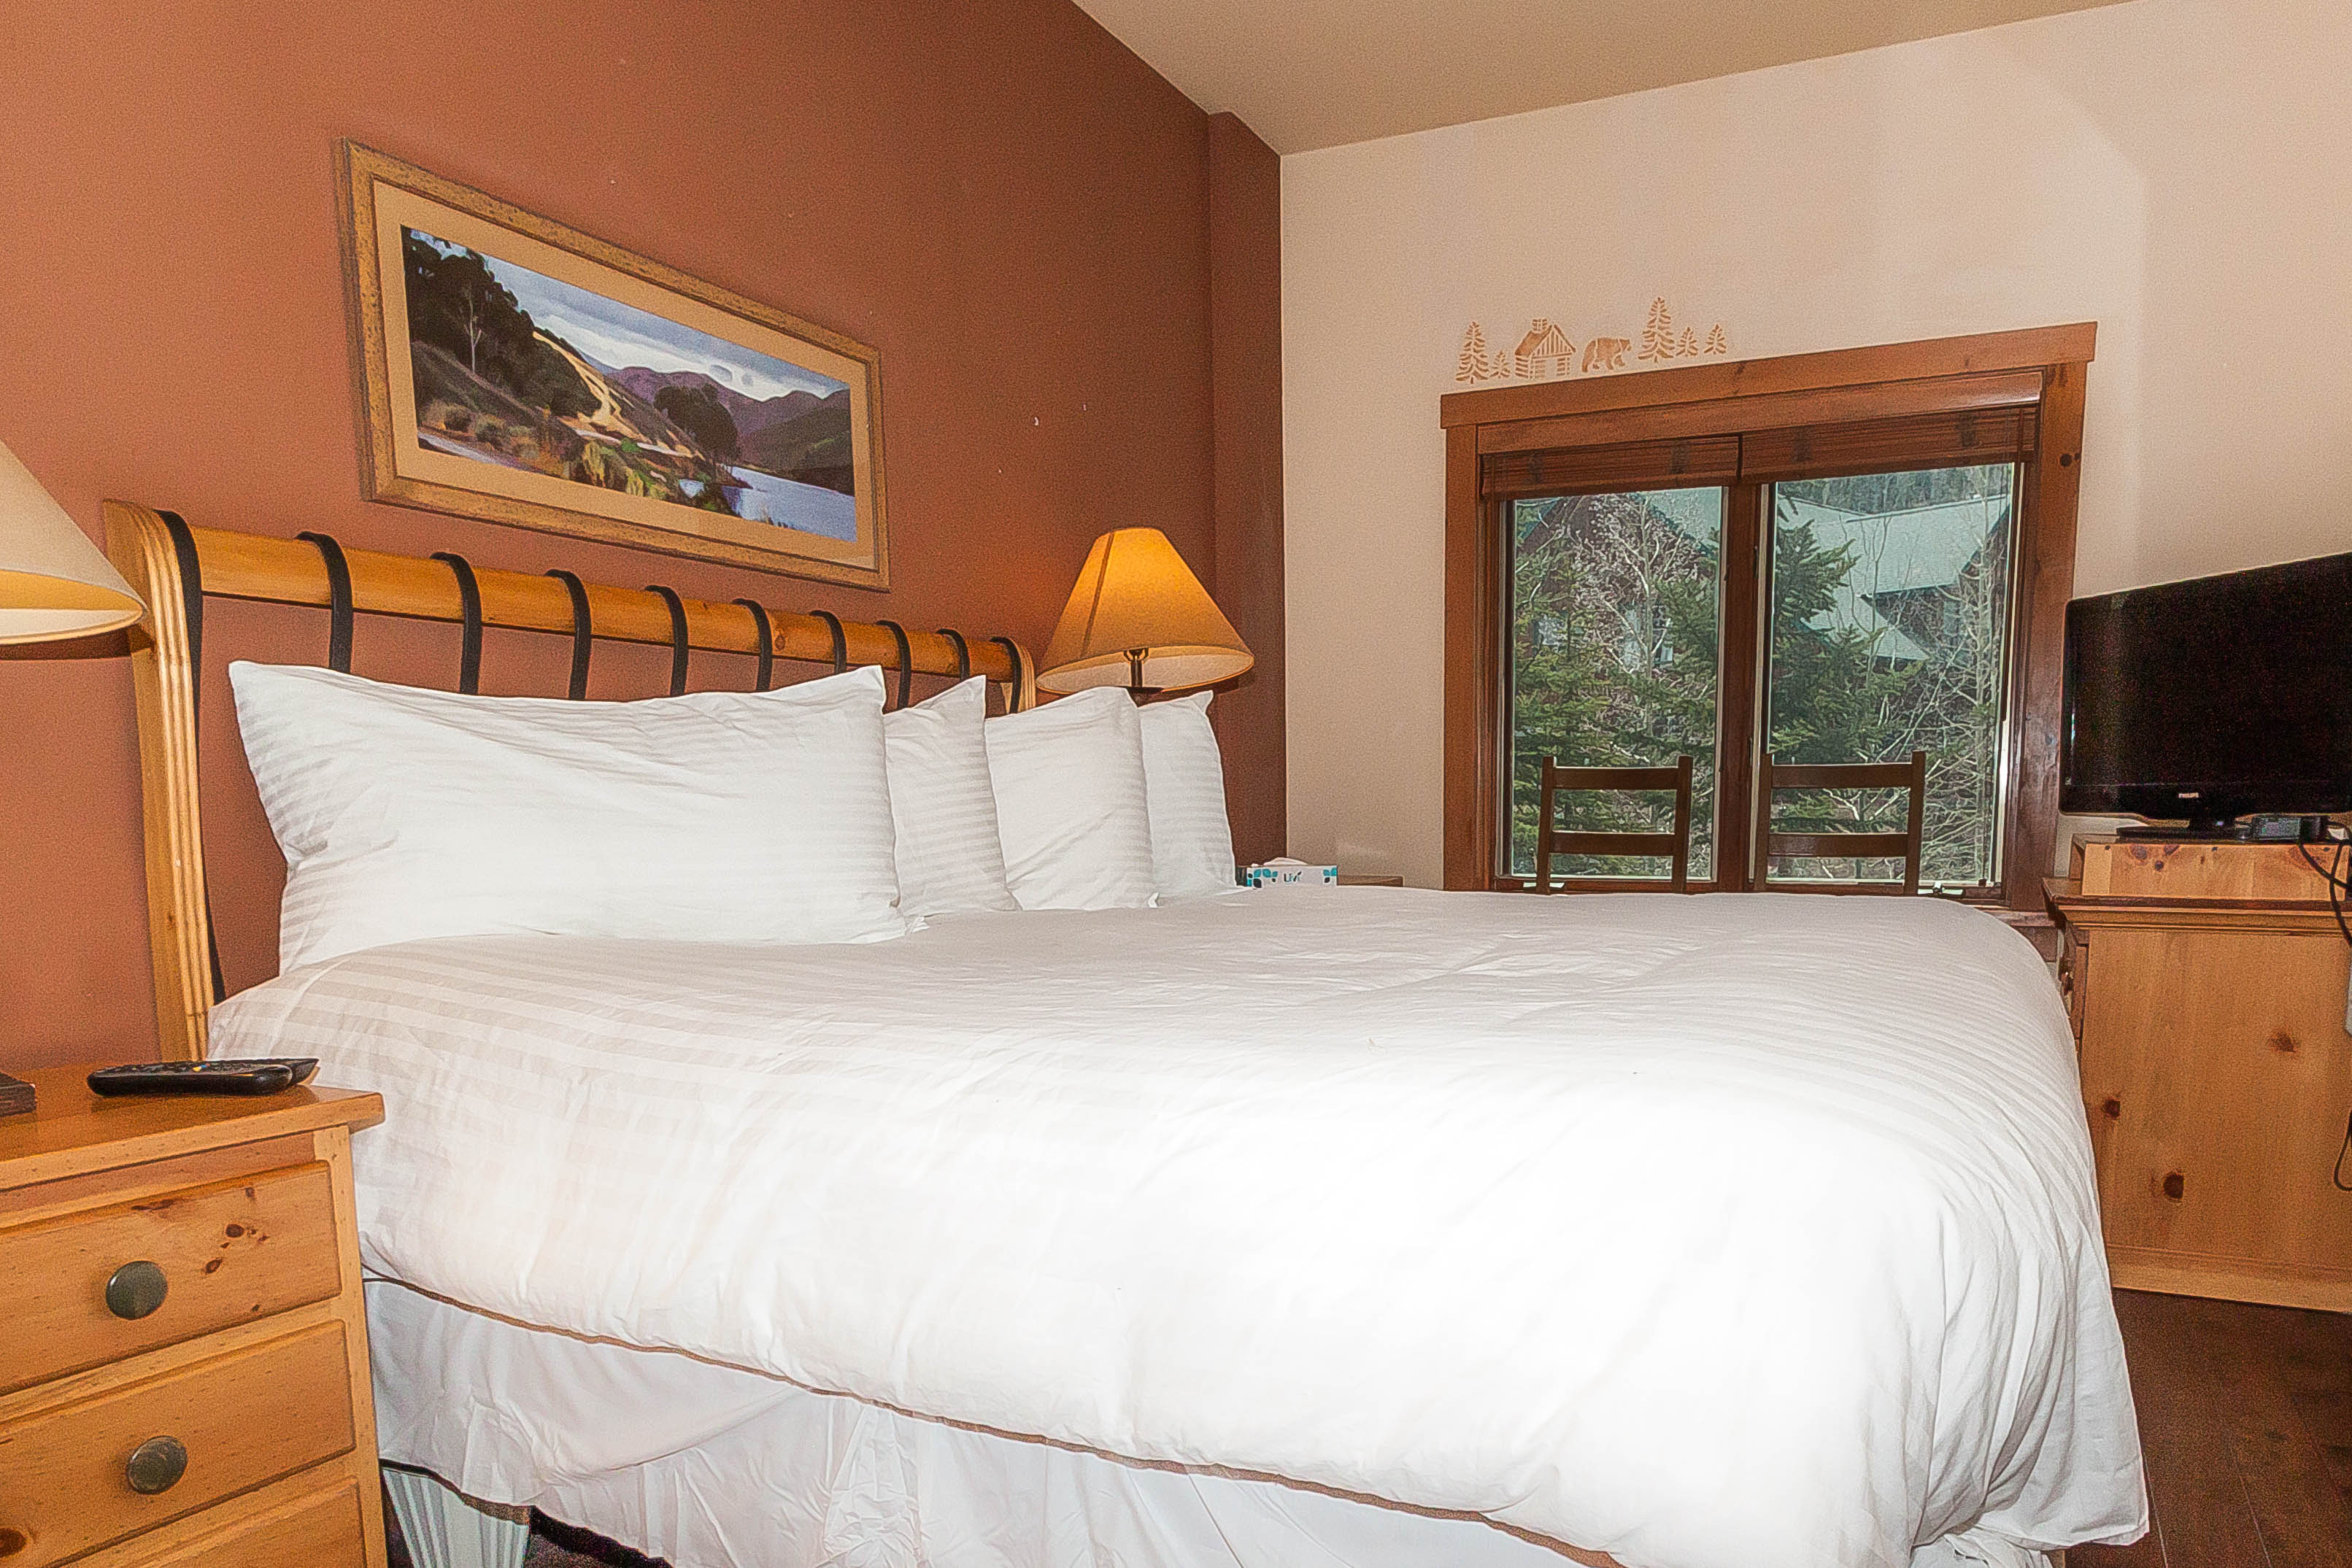 The master bedroom features a king-sized bed with Ivory White Bedding and a flat screen TV.